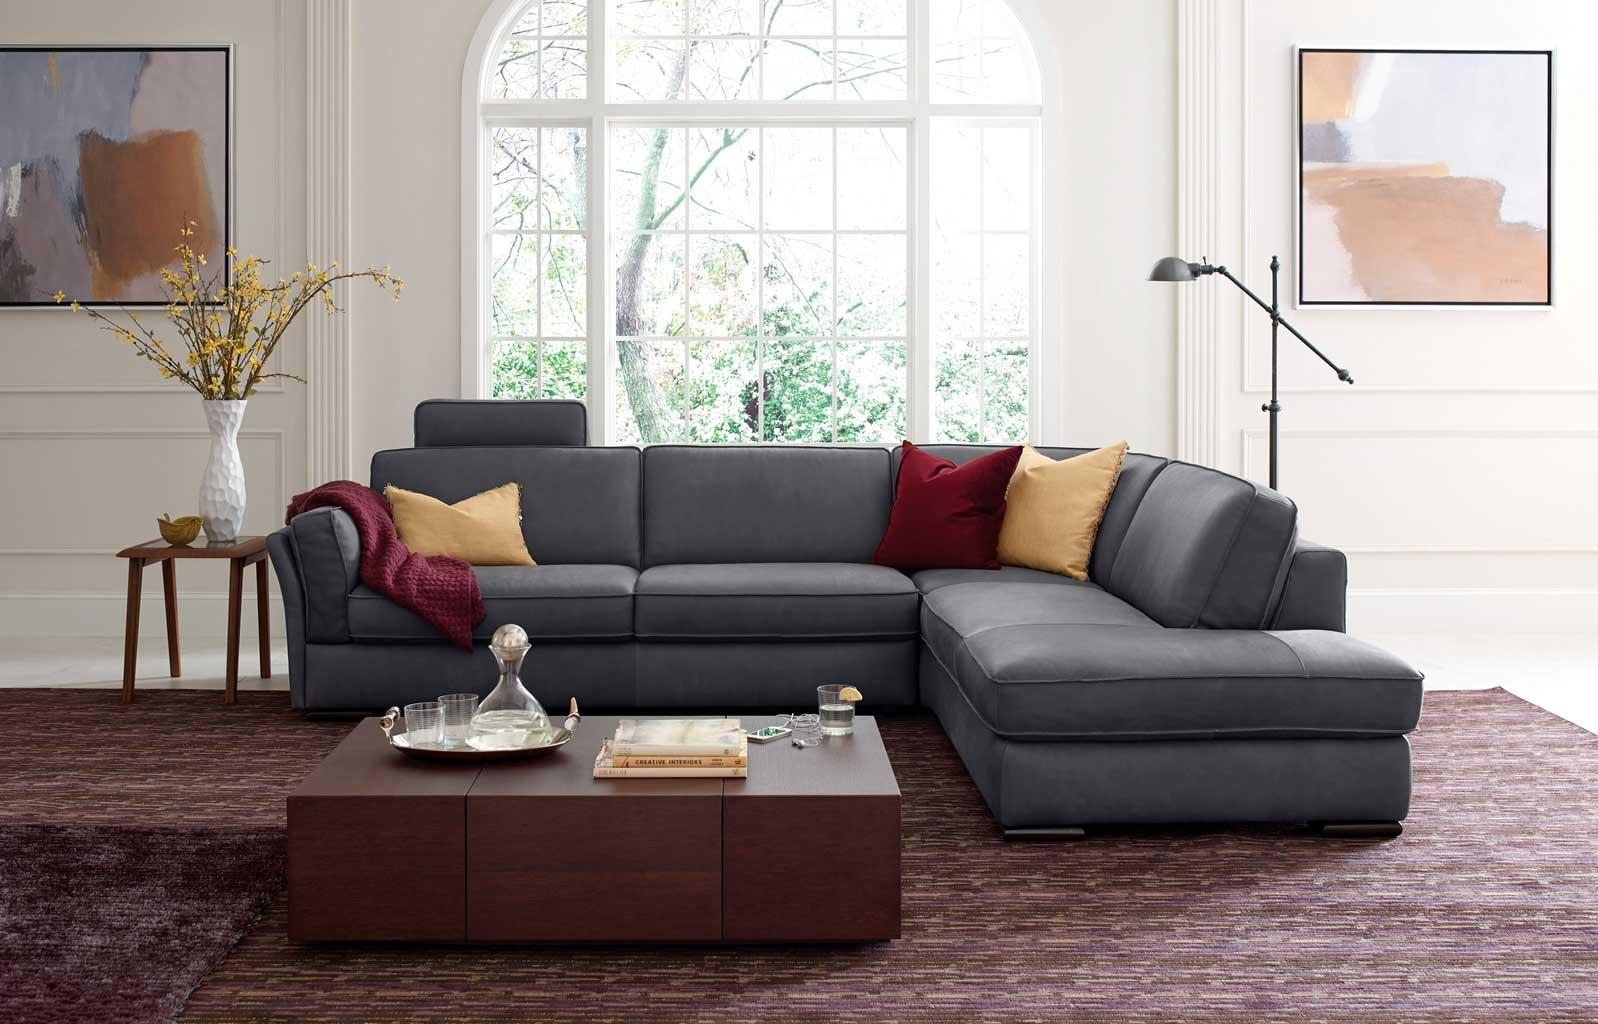 2018 Latest Natuzzi Microfiber Sectional Sofas Sofa Ideas